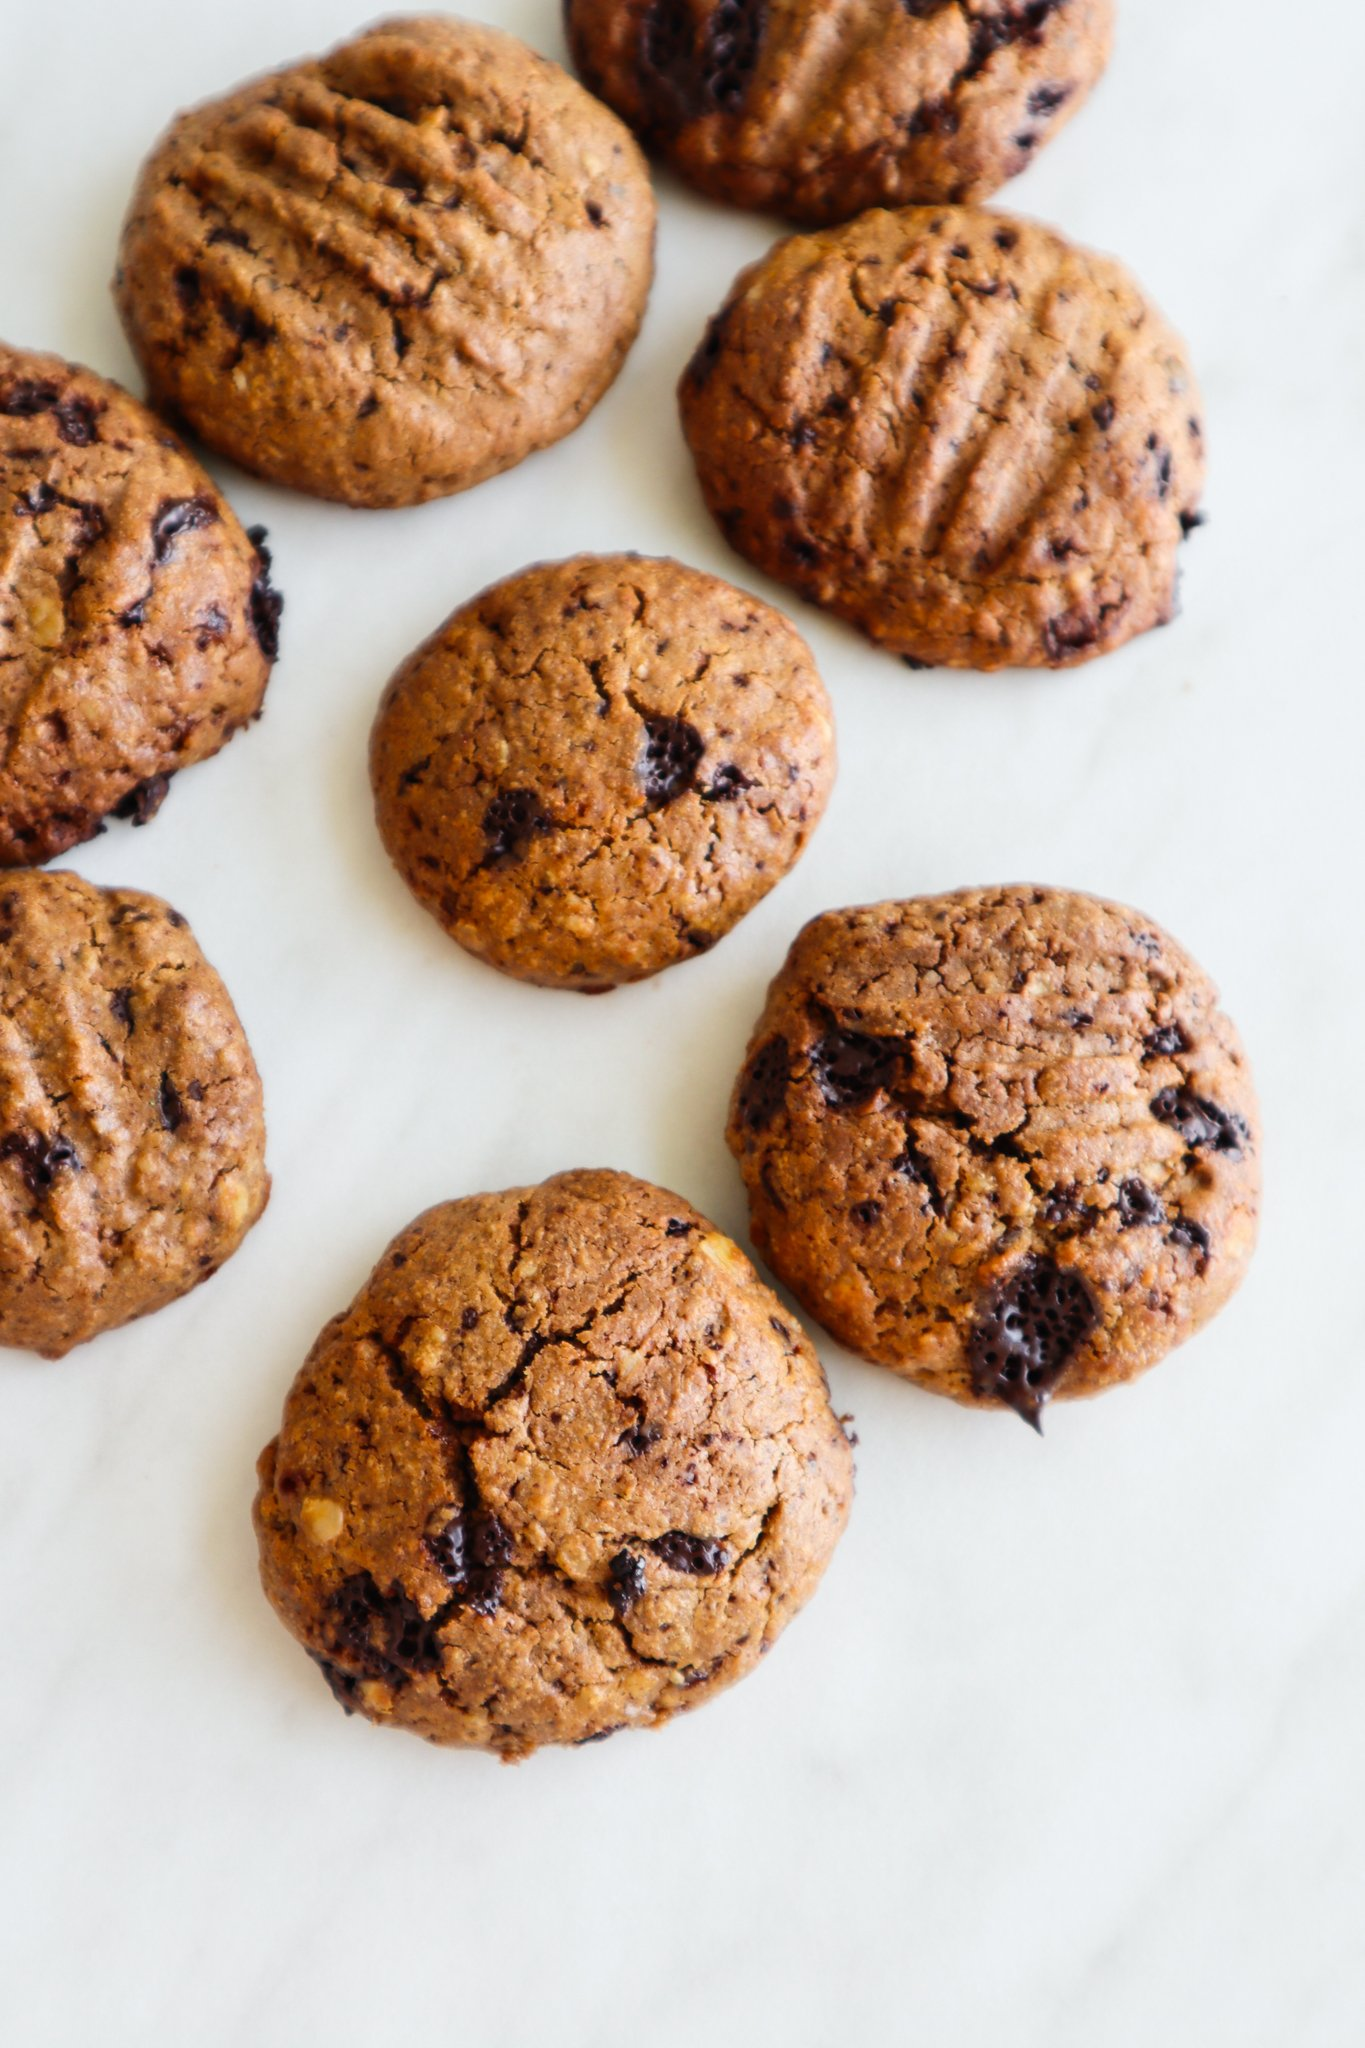 You need to try this healthy peanut butter oatmeal cookie recipe! These peanut butter chocolate chip oatmeal cookies are made without flour and refined sugar, super easy, and a quick snack or even breakfast when you have no time to make something in the morning. This easy cookie recipe is gluten and dairy free.